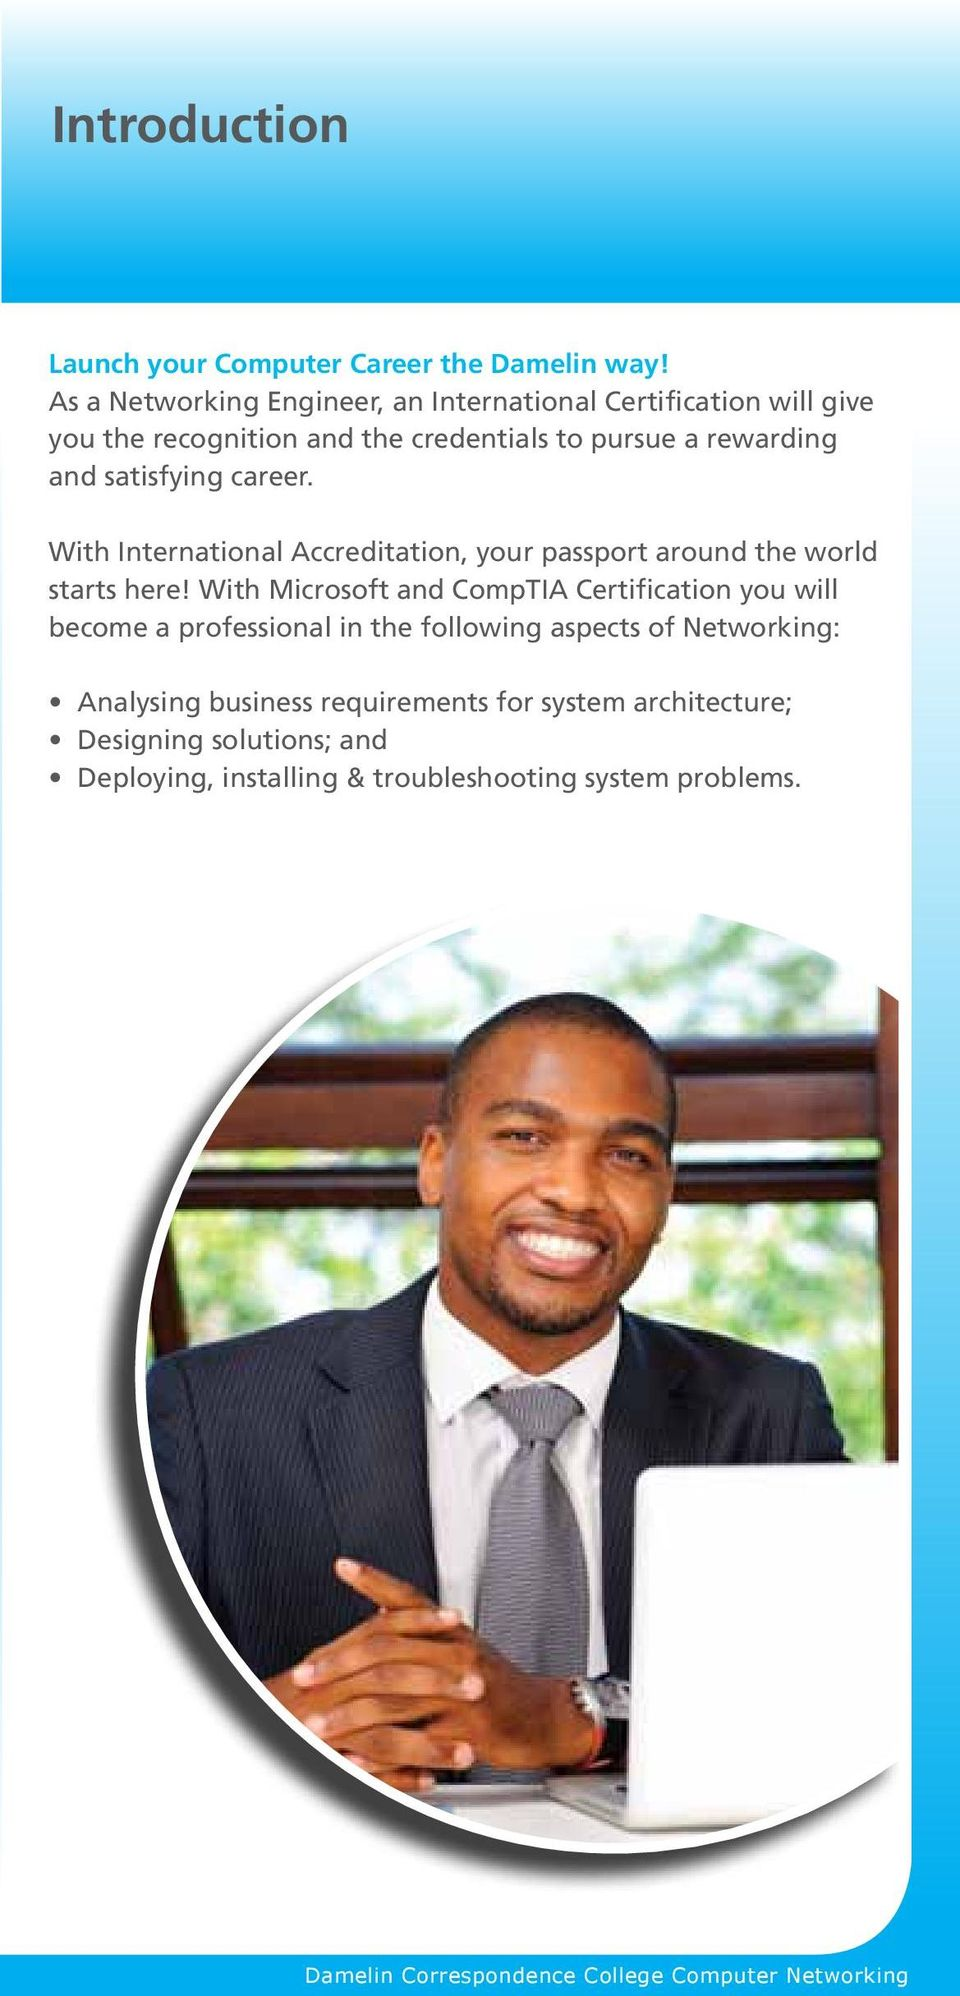 satisfying career. With International Accreditation, your passport around the world starts here!